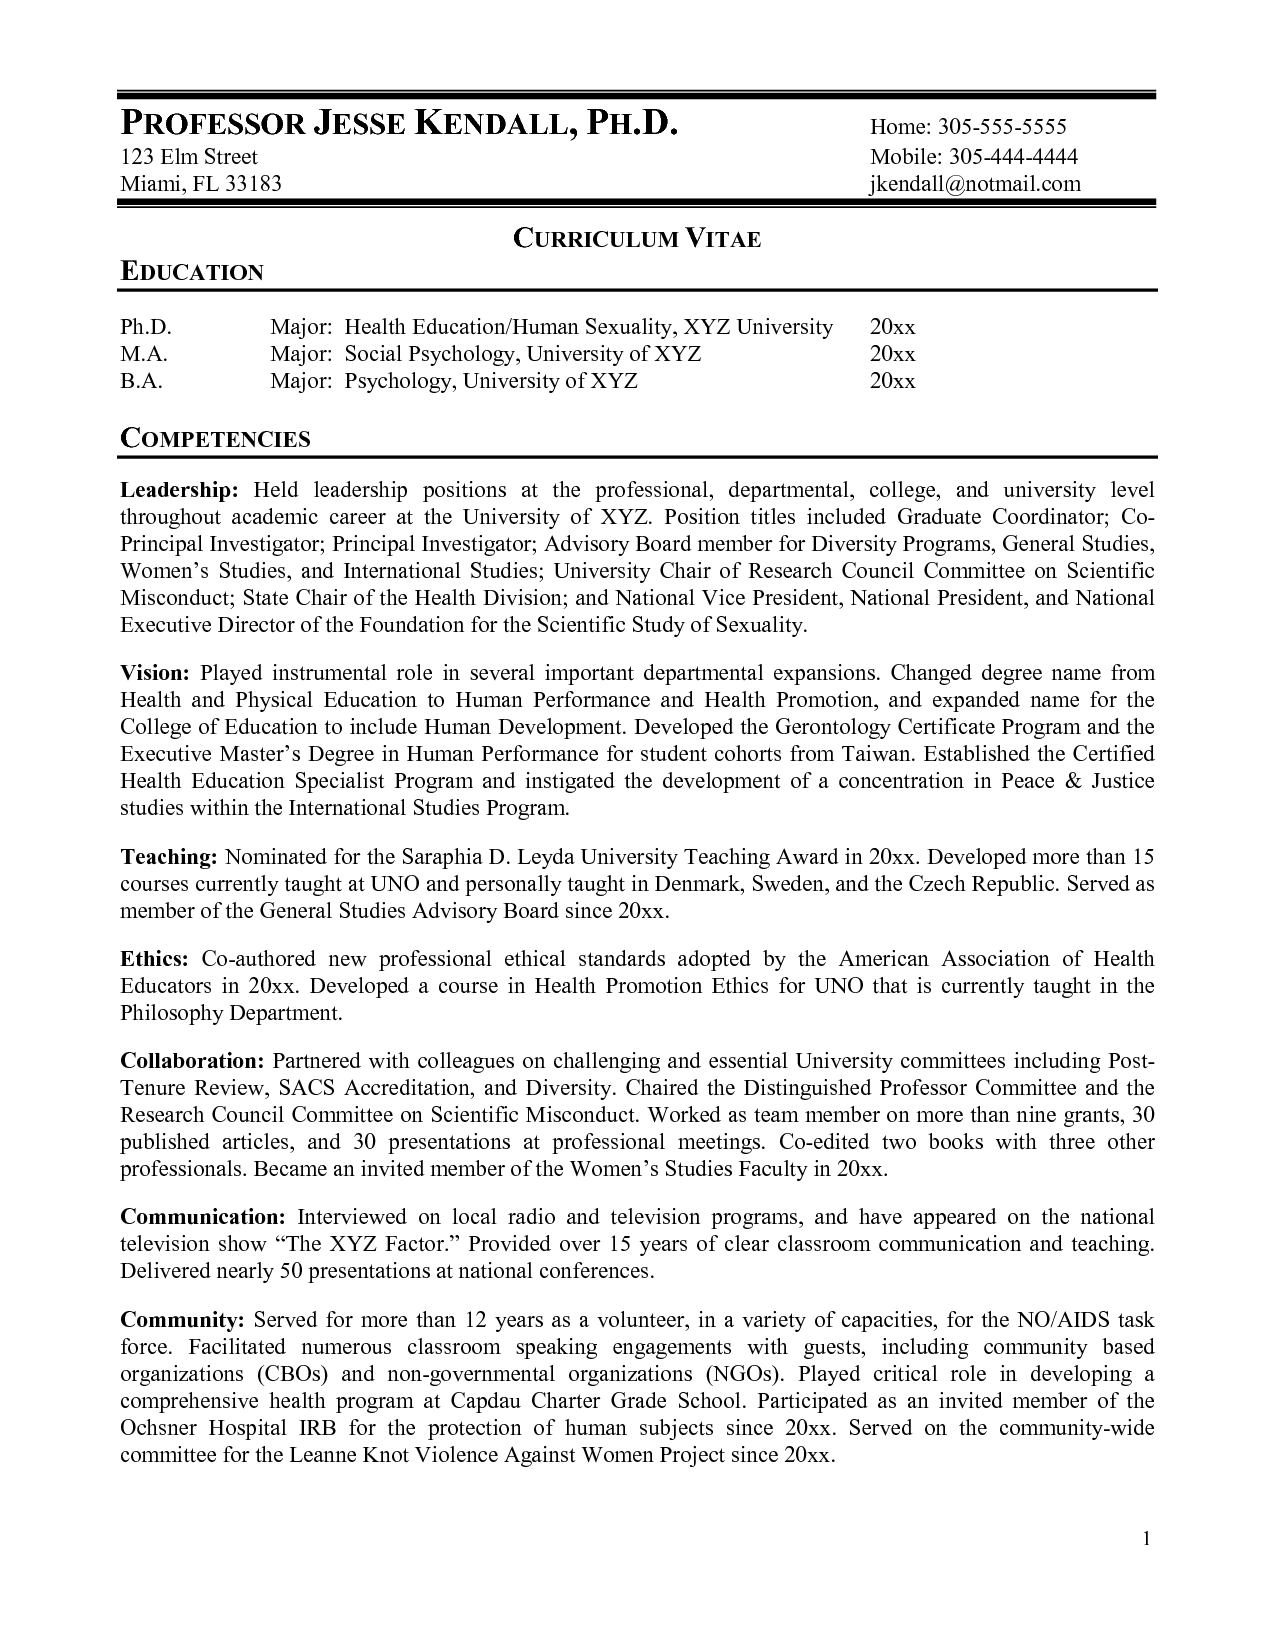 Resume And Cv Samples